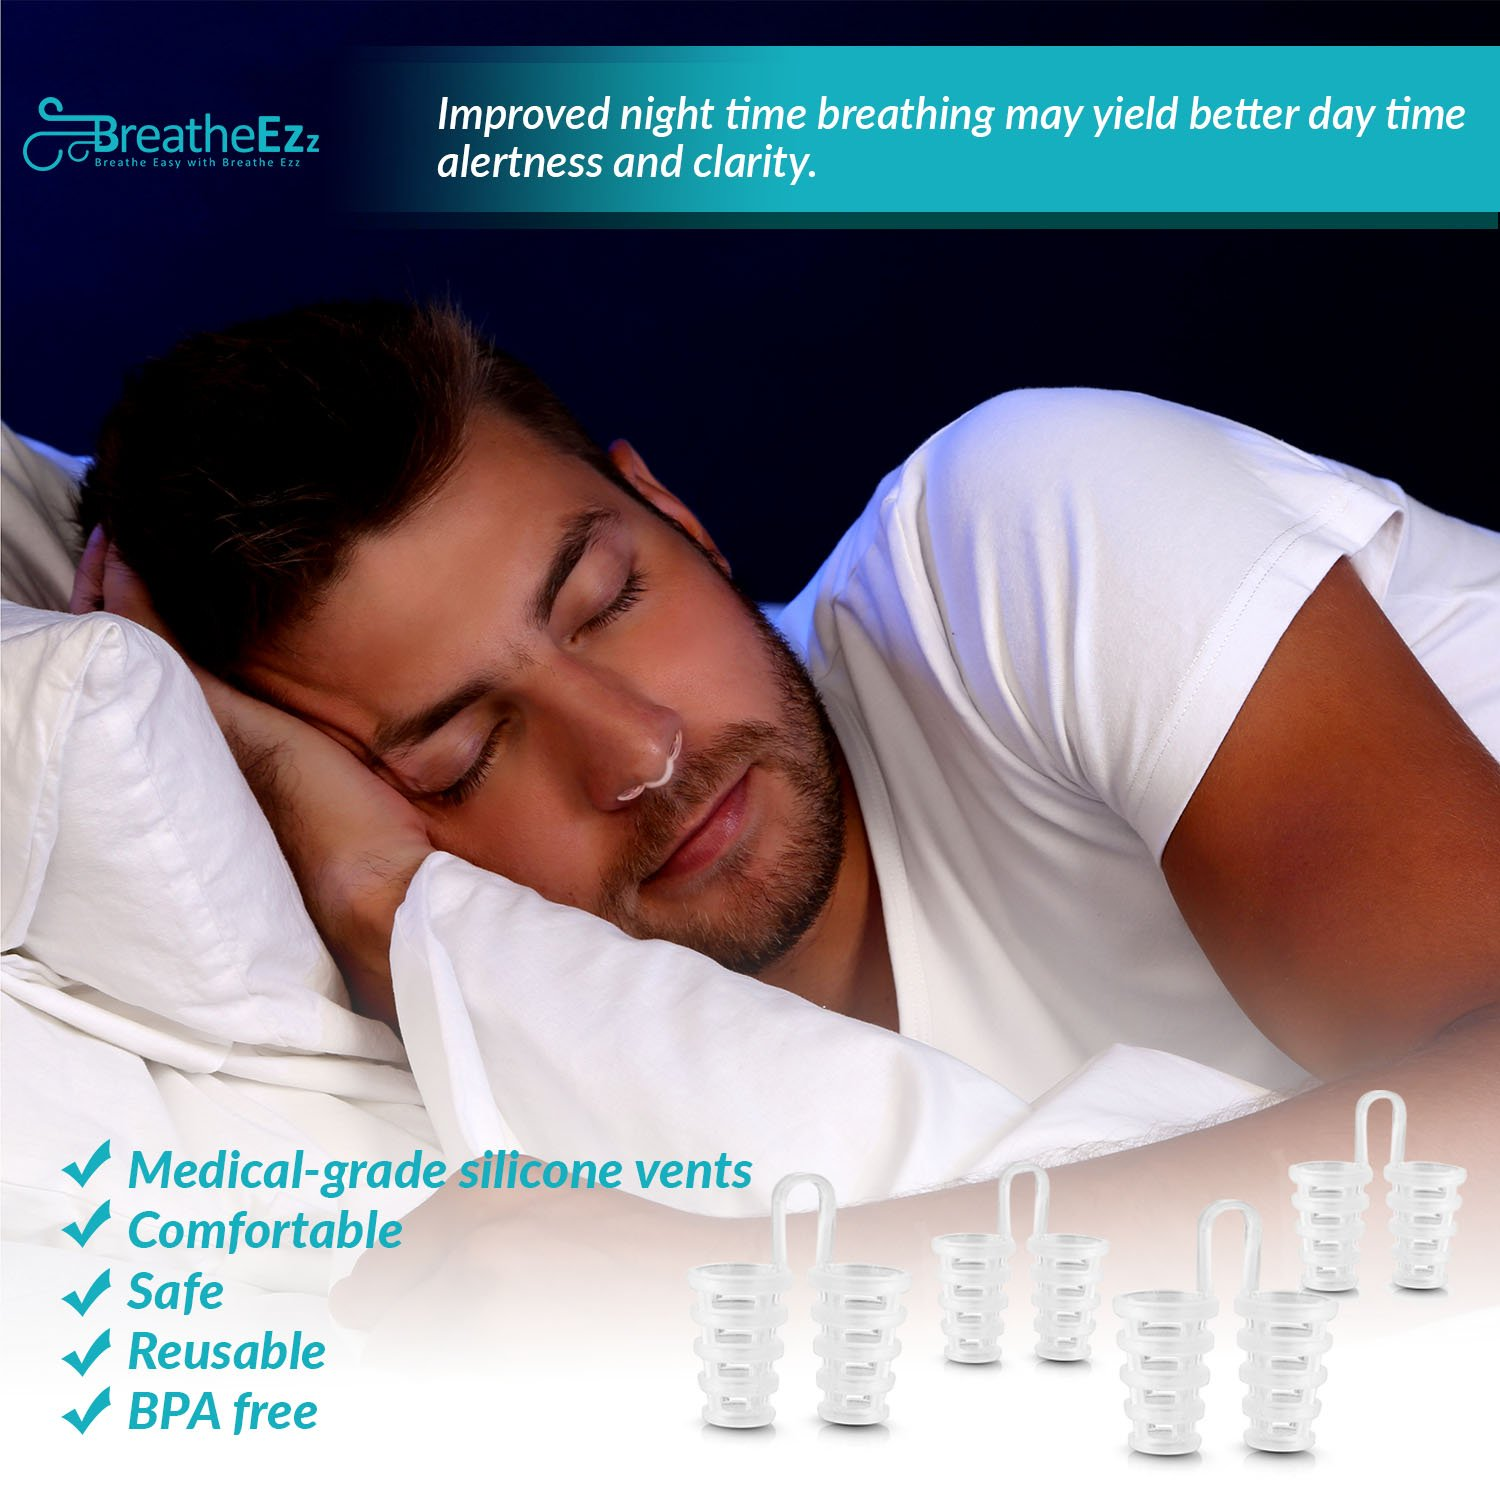 Anti Snoring Solutions, Nasal Dilators, Nose Vent Anti Snoring Device Snore Stopper – Snoring Solution Sleep Aid Device Set of 4 by Breathe Ezz by Breathe Ezz (Image #4)